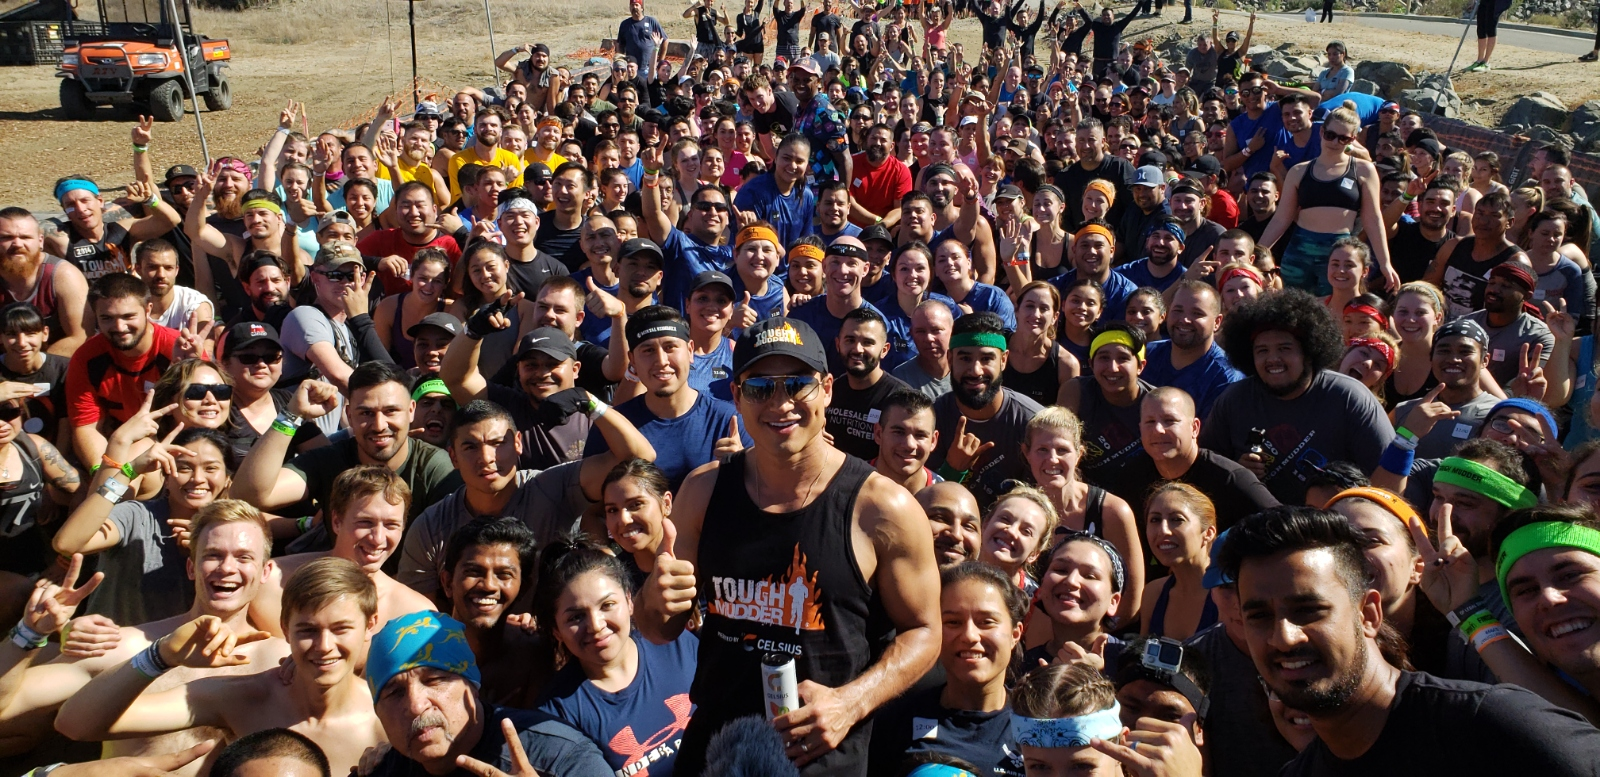 tough Mudder, mario Lopez